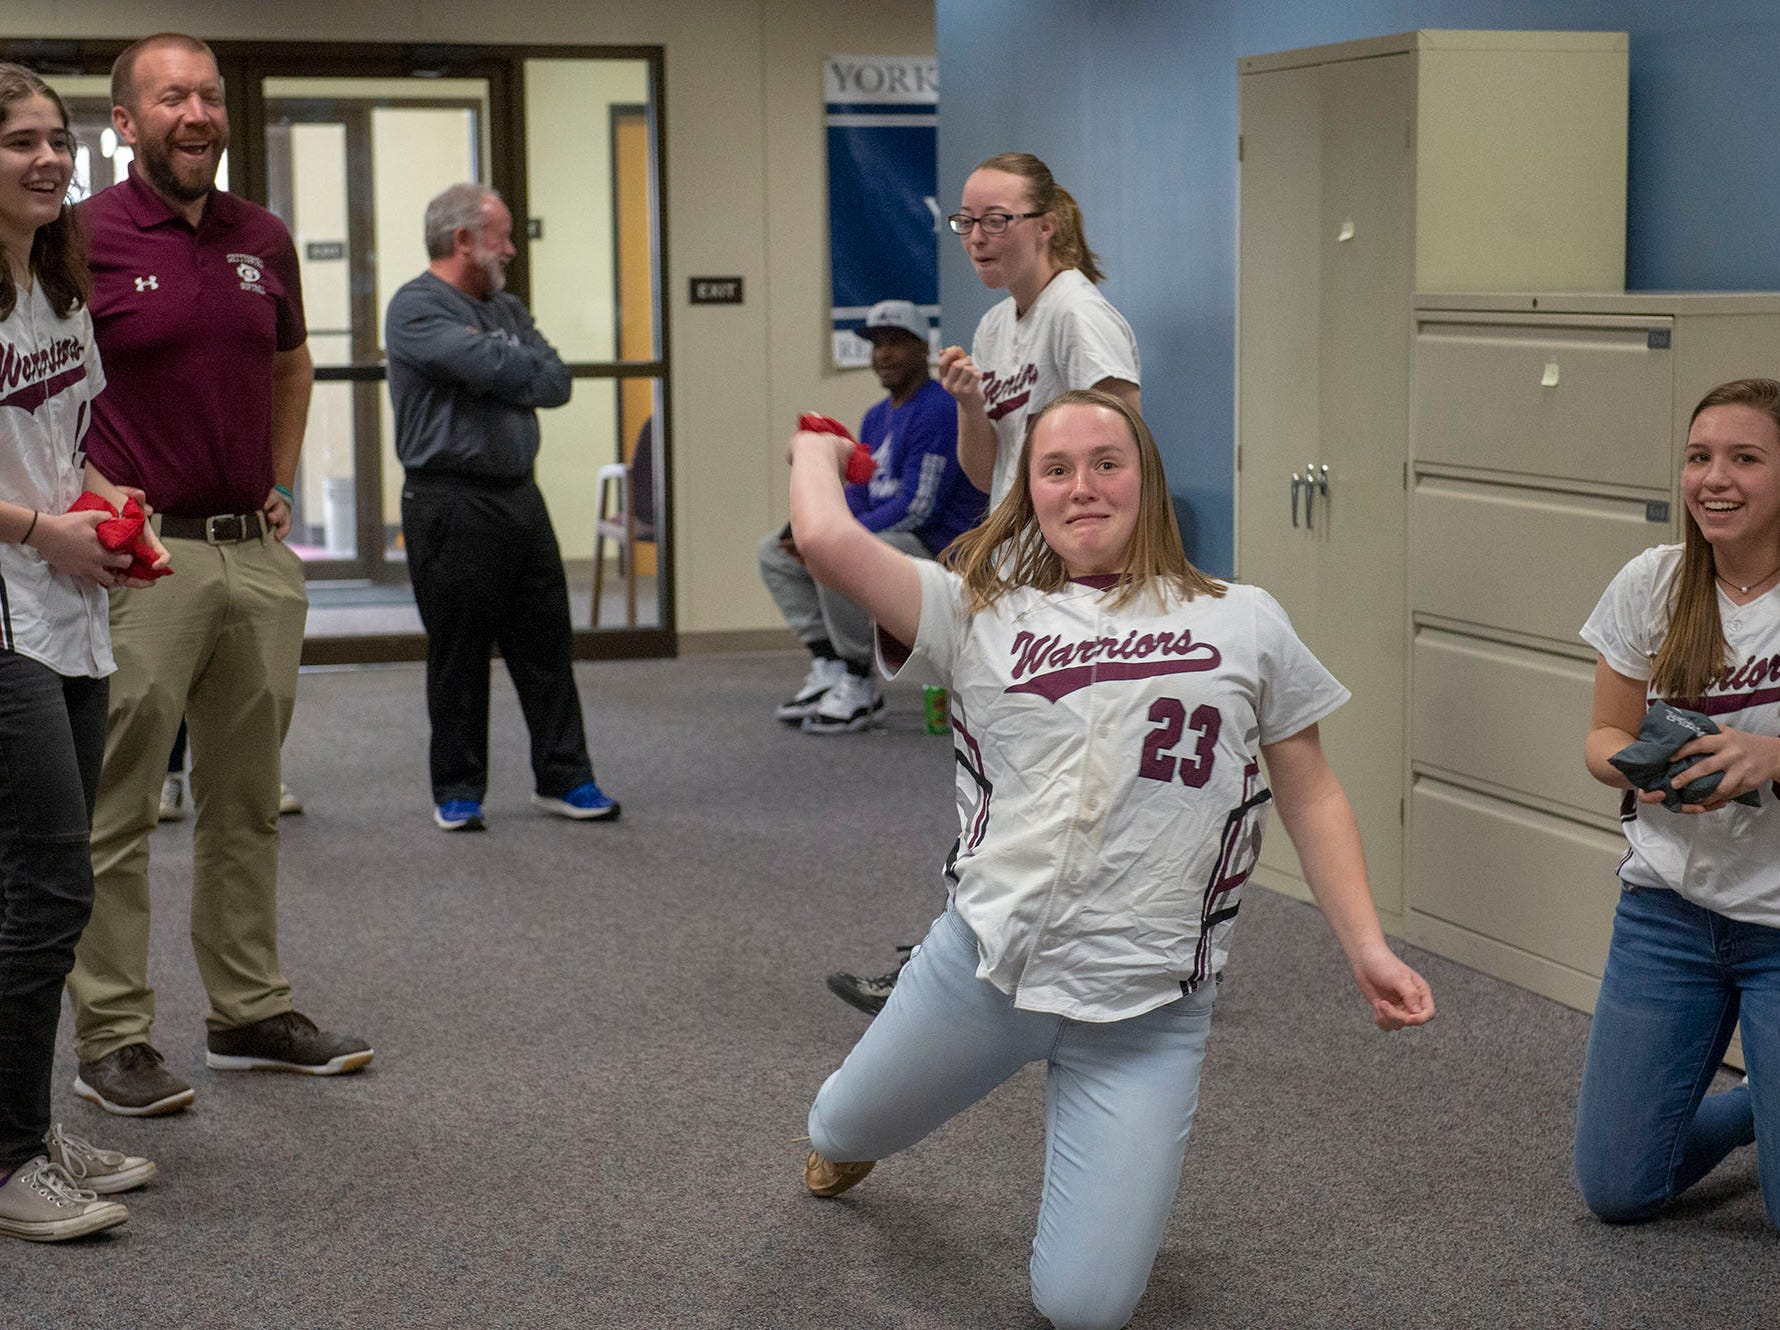 Gettysburg softball player Rachel Keller tried throwing from her catcher's position in the long-distance cornhole throw at GameTimePA's YAIAA Spring Media Day on Sunday, March 10, 2019.